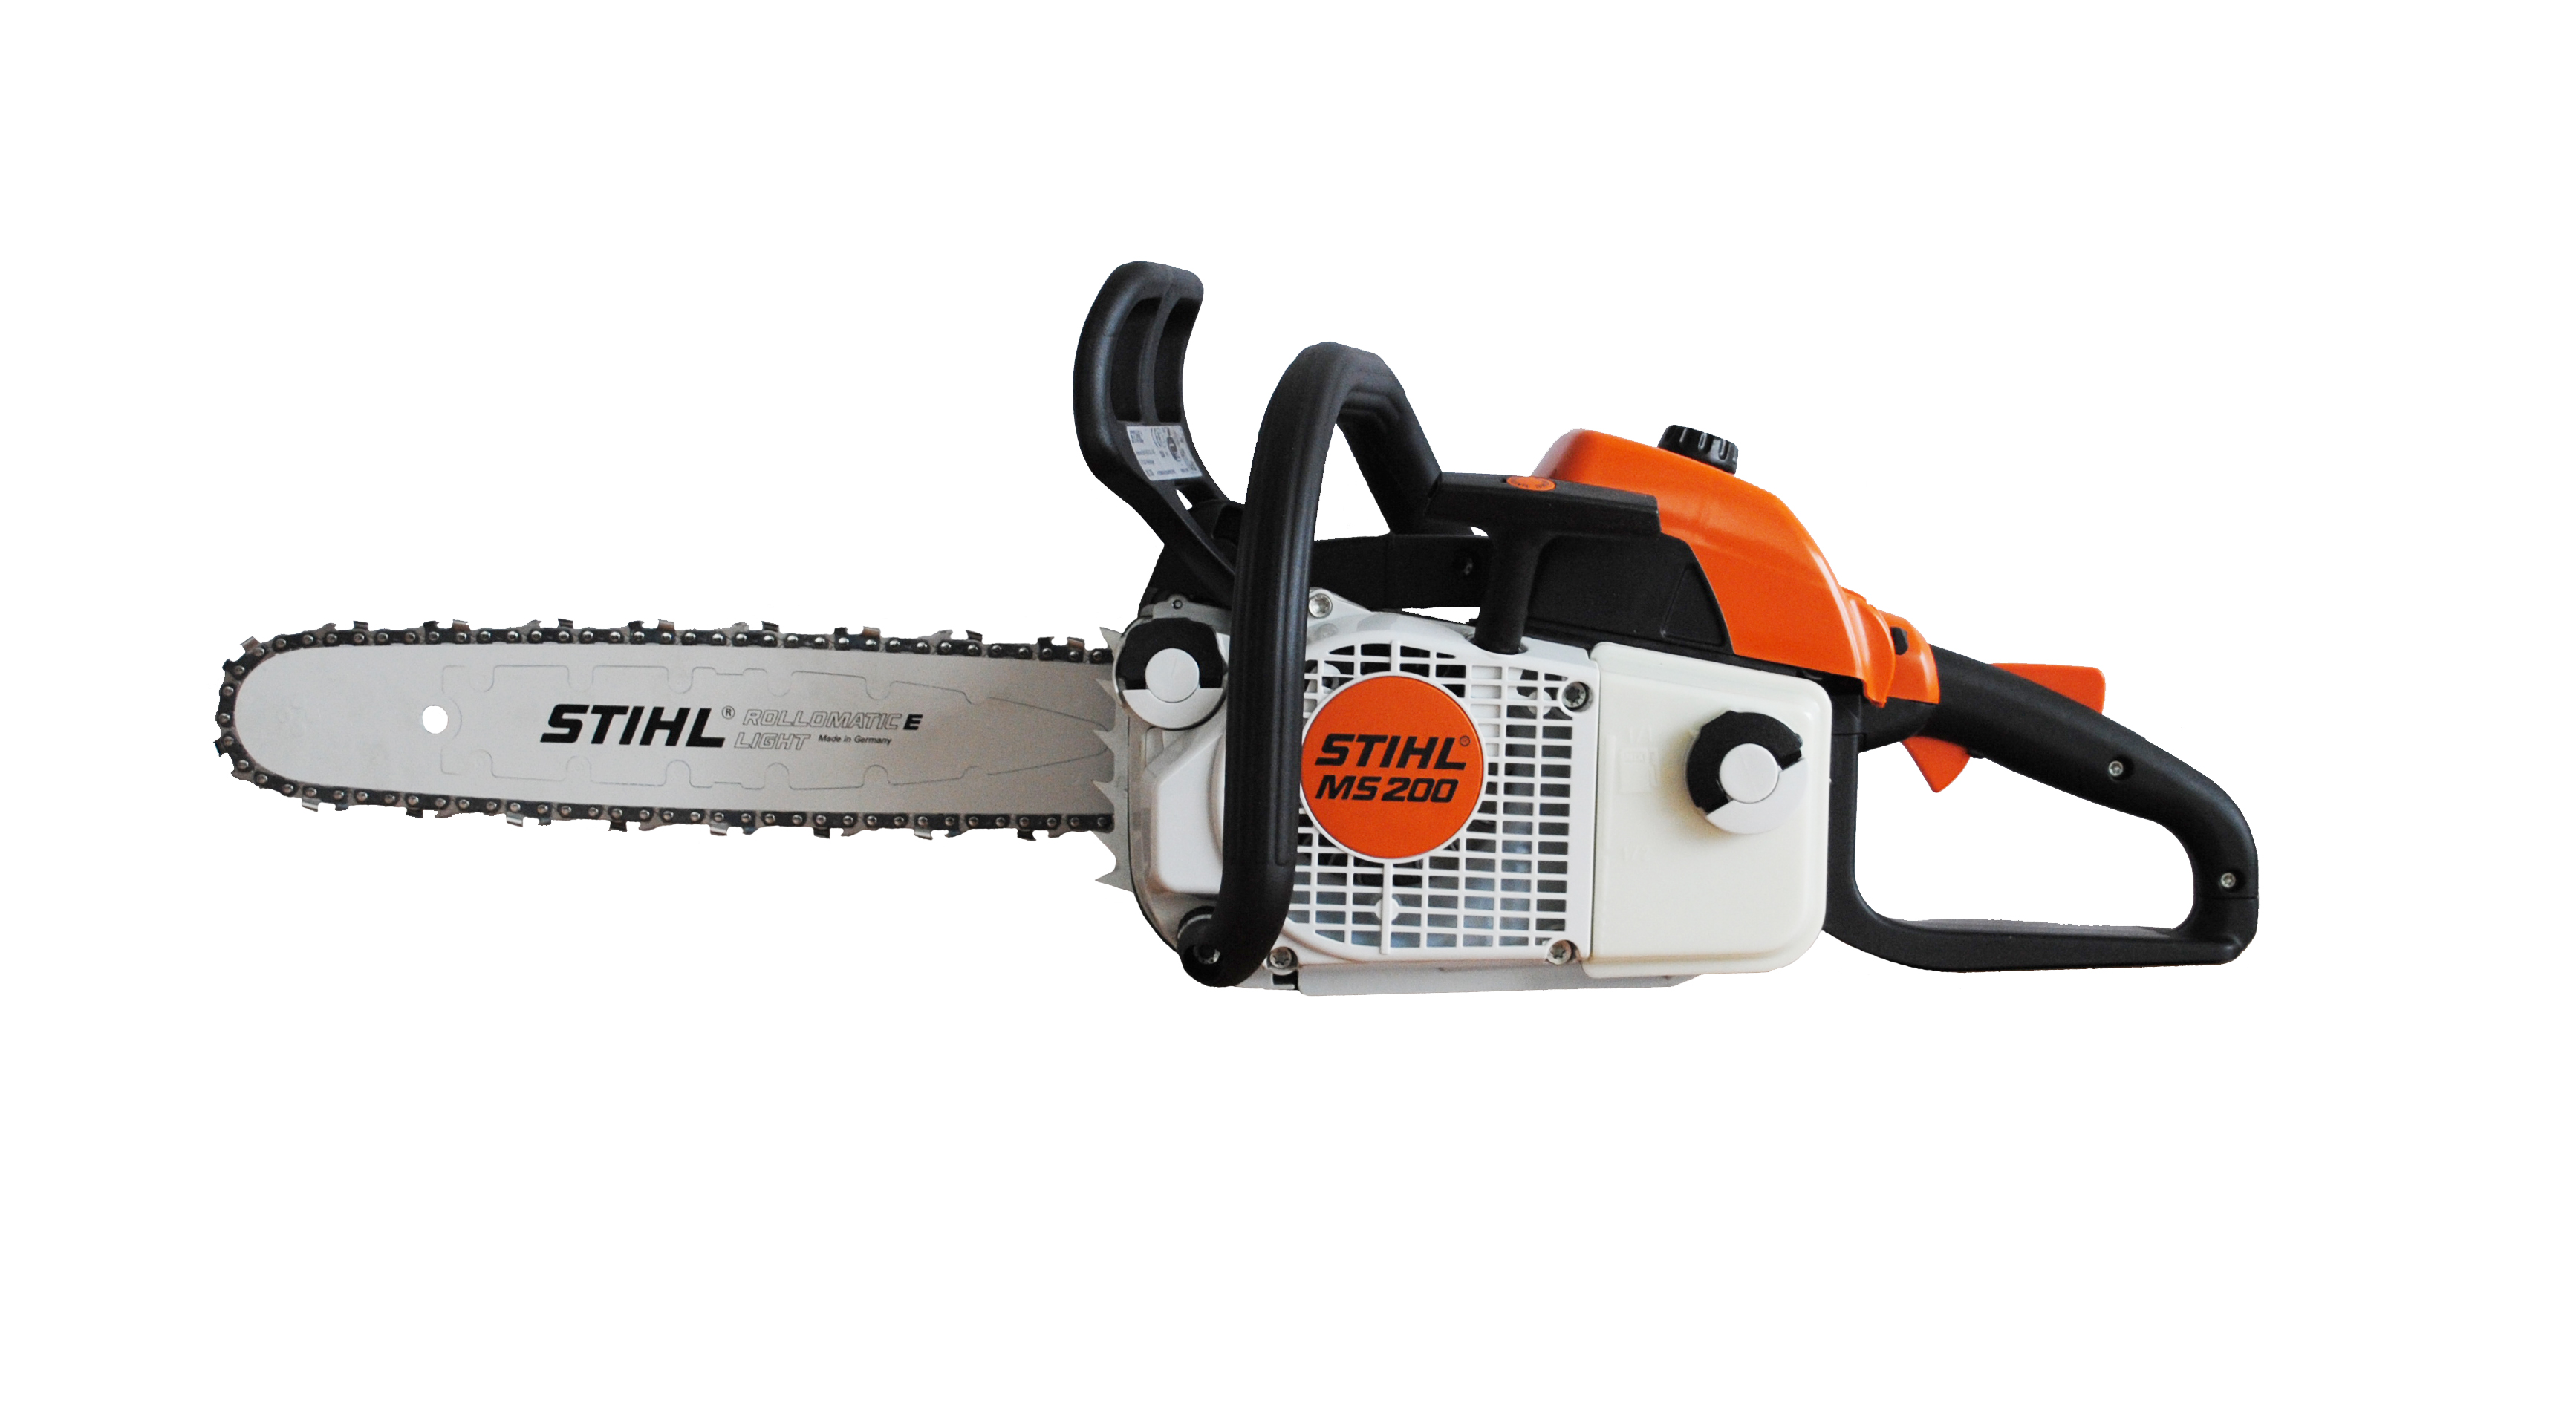 stihl ms 200 chainsaw 35cm brand new sale ebay. Black Bedroom Furniture Sets. Home Design Ideas